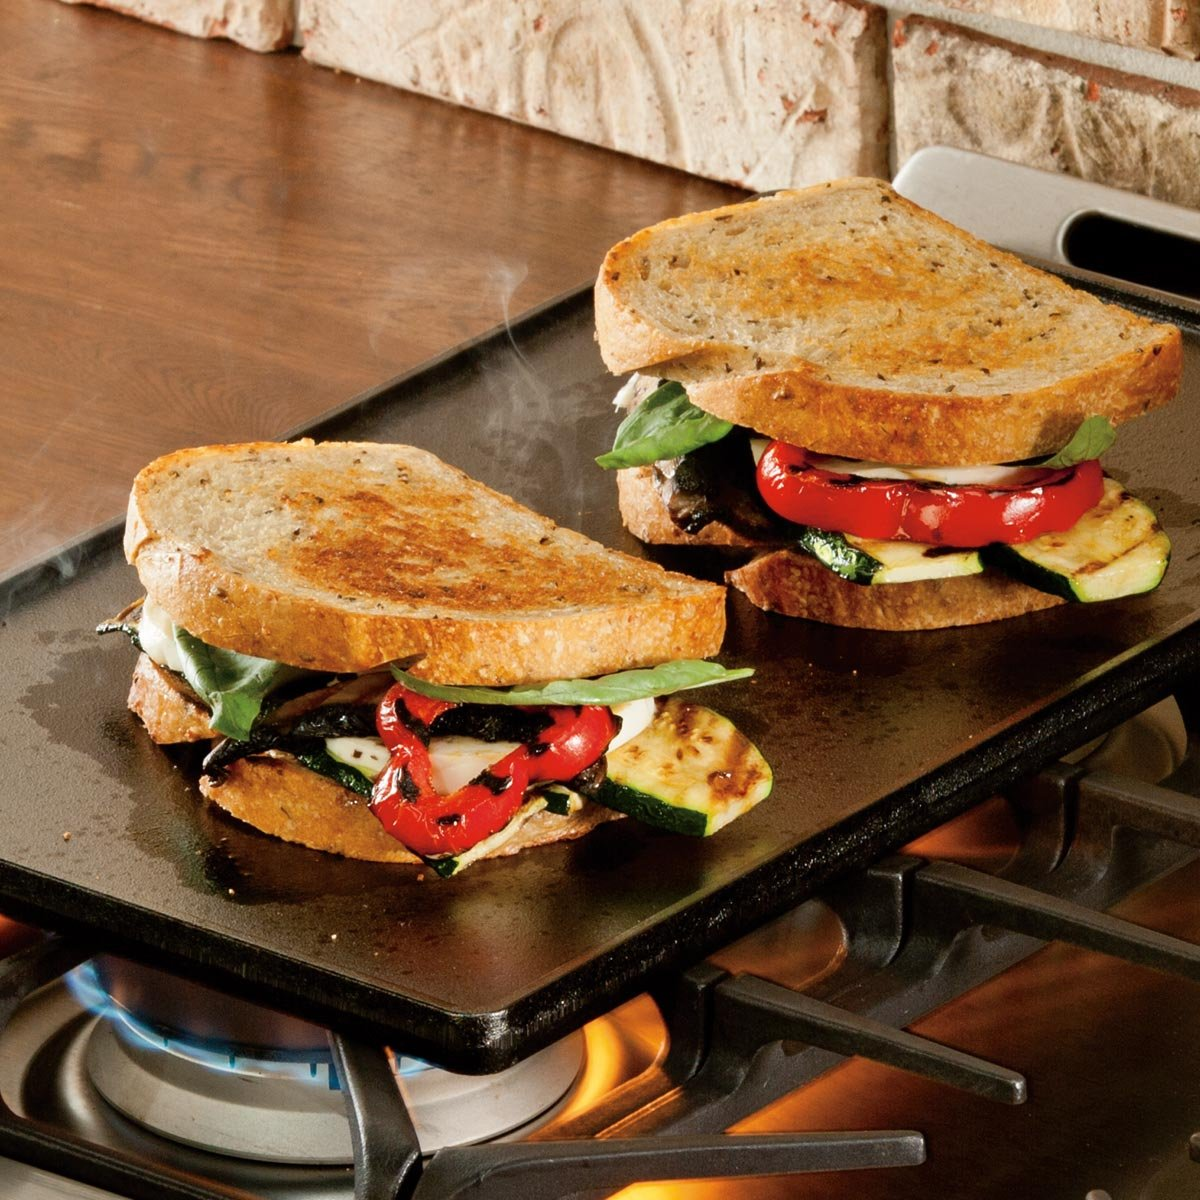 Lodge Reversible Grill and Griddle Combo. Double-Sided Cast Iron Pan with Smooth Side and Ribbed Side. by Lodge (Image #3)